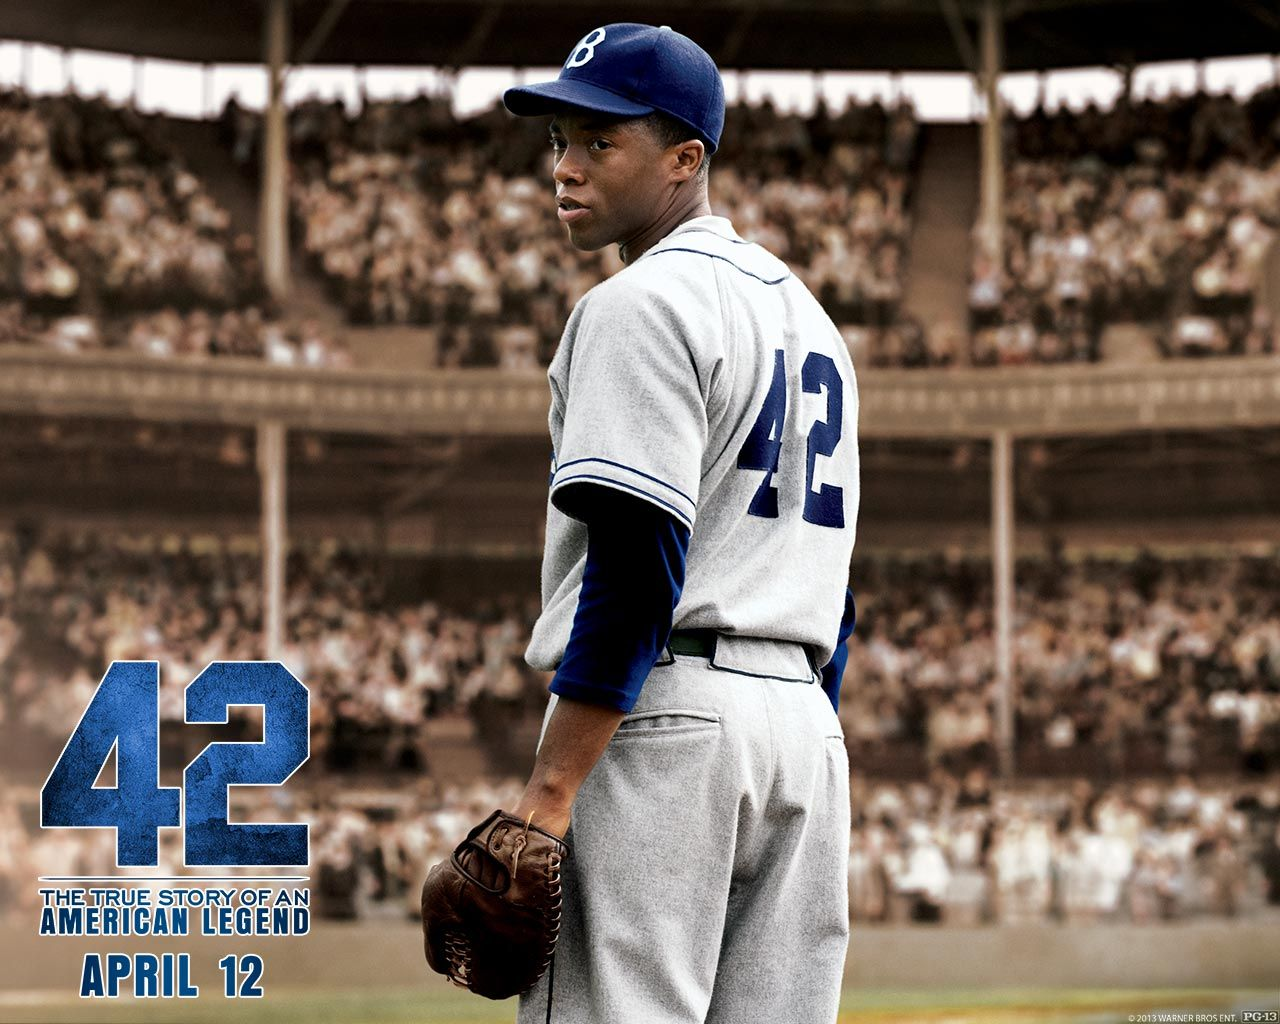 Jackie Robinson Story Poster Wallpaper